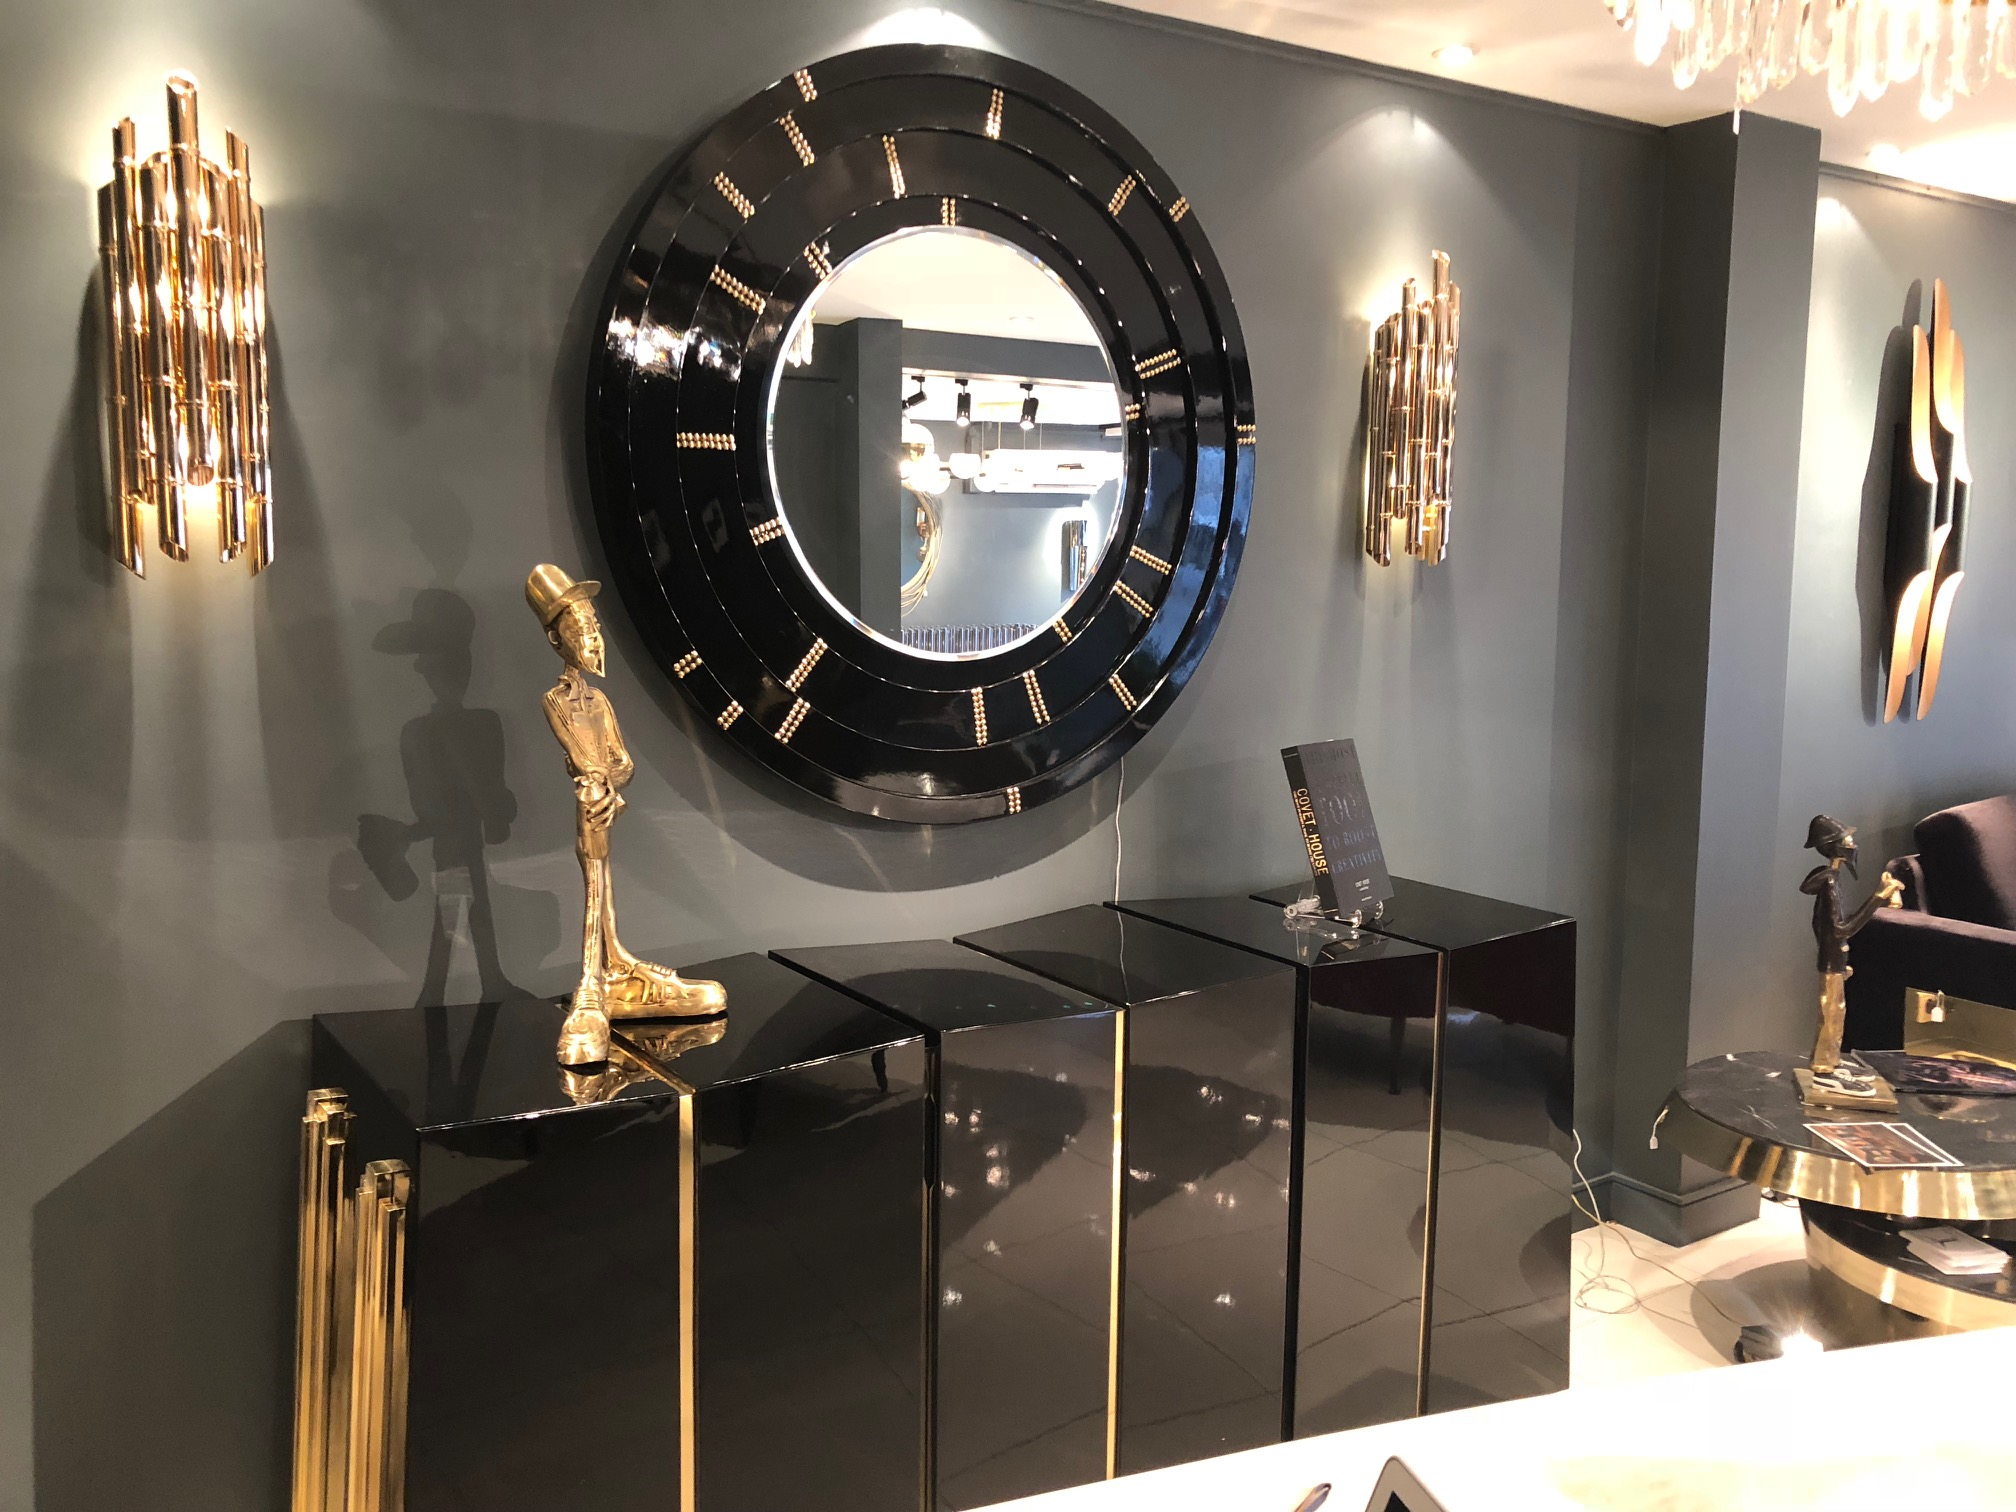 Covet Paris And Its Magical Excellence In Design World1 Covet Paris Covet Paris And Its Magical Excellence In Design World Covet Paris And Its Magical Excellence In Design World1